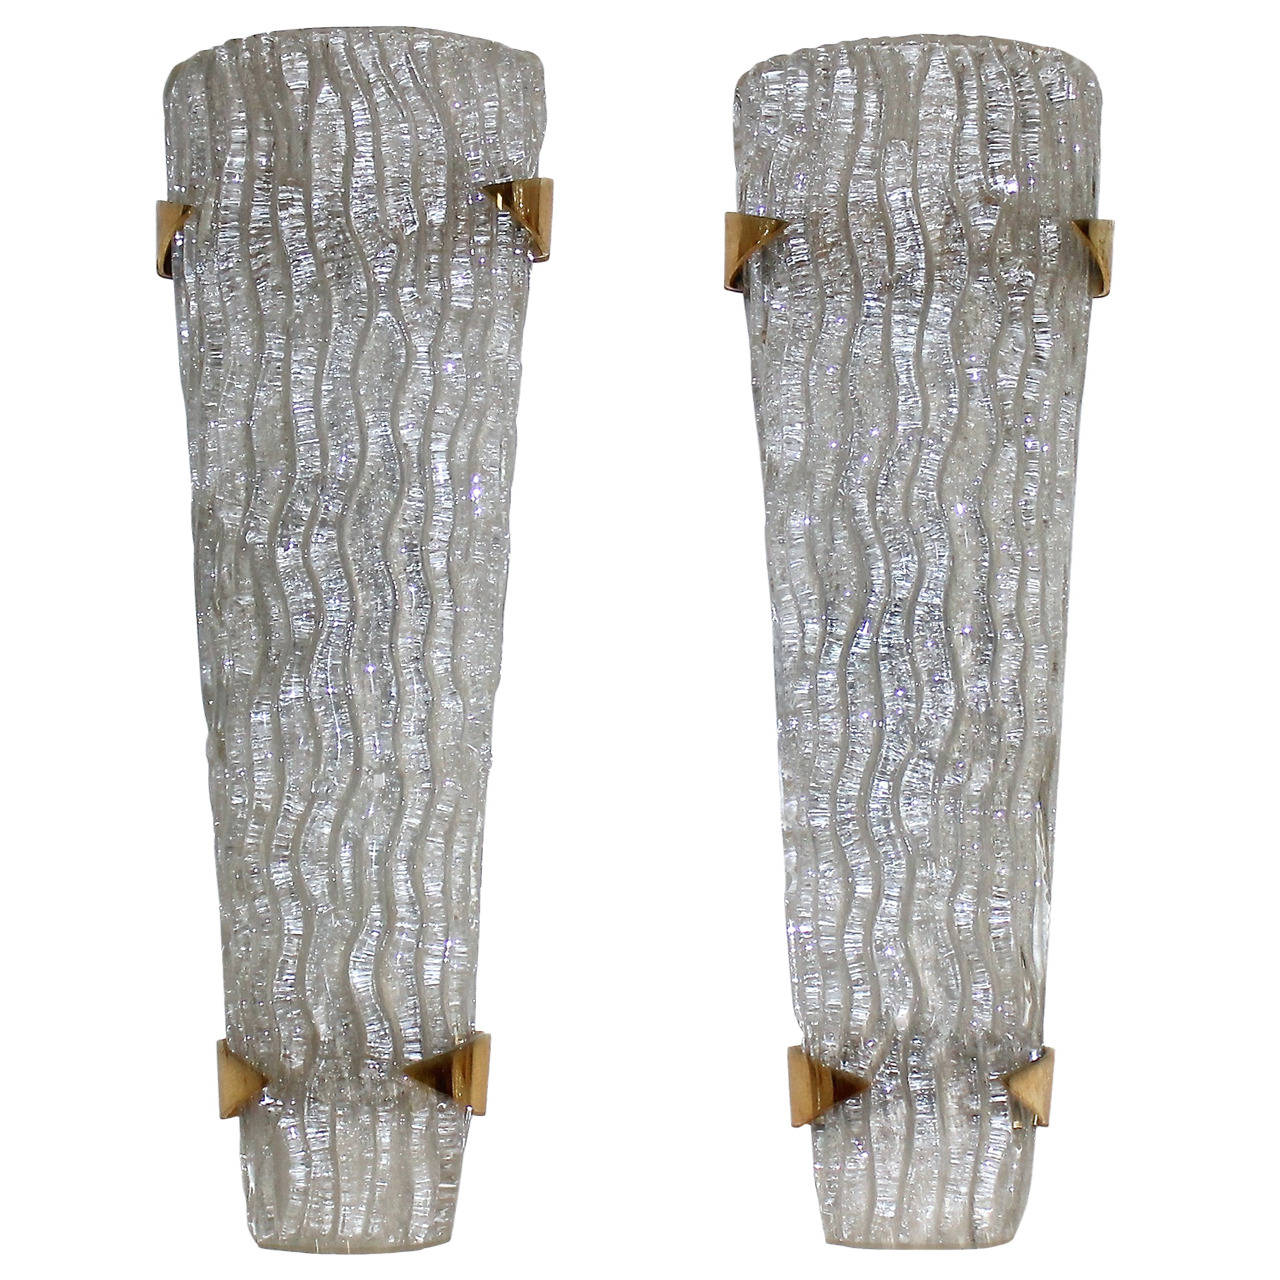 Large pair of murano rugiadoso glass wall sconces at 1stdibs for Large glass wall